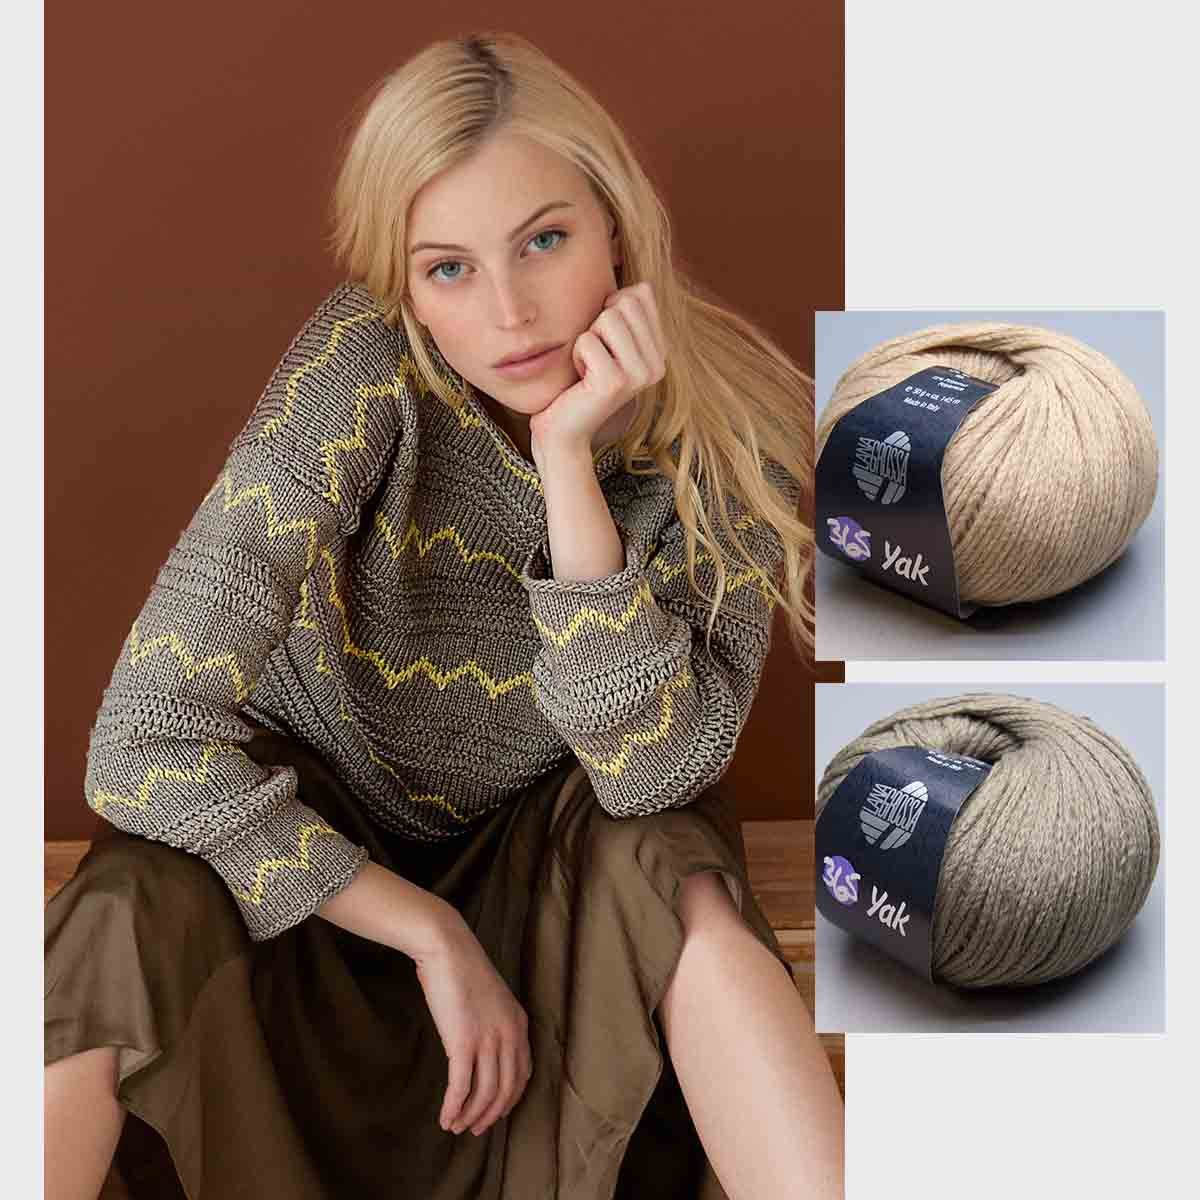 Short Kastiger Lana Grossa 365 Yak in Knitting Set with Instructions in Garnwelt Box 2 UK 1820